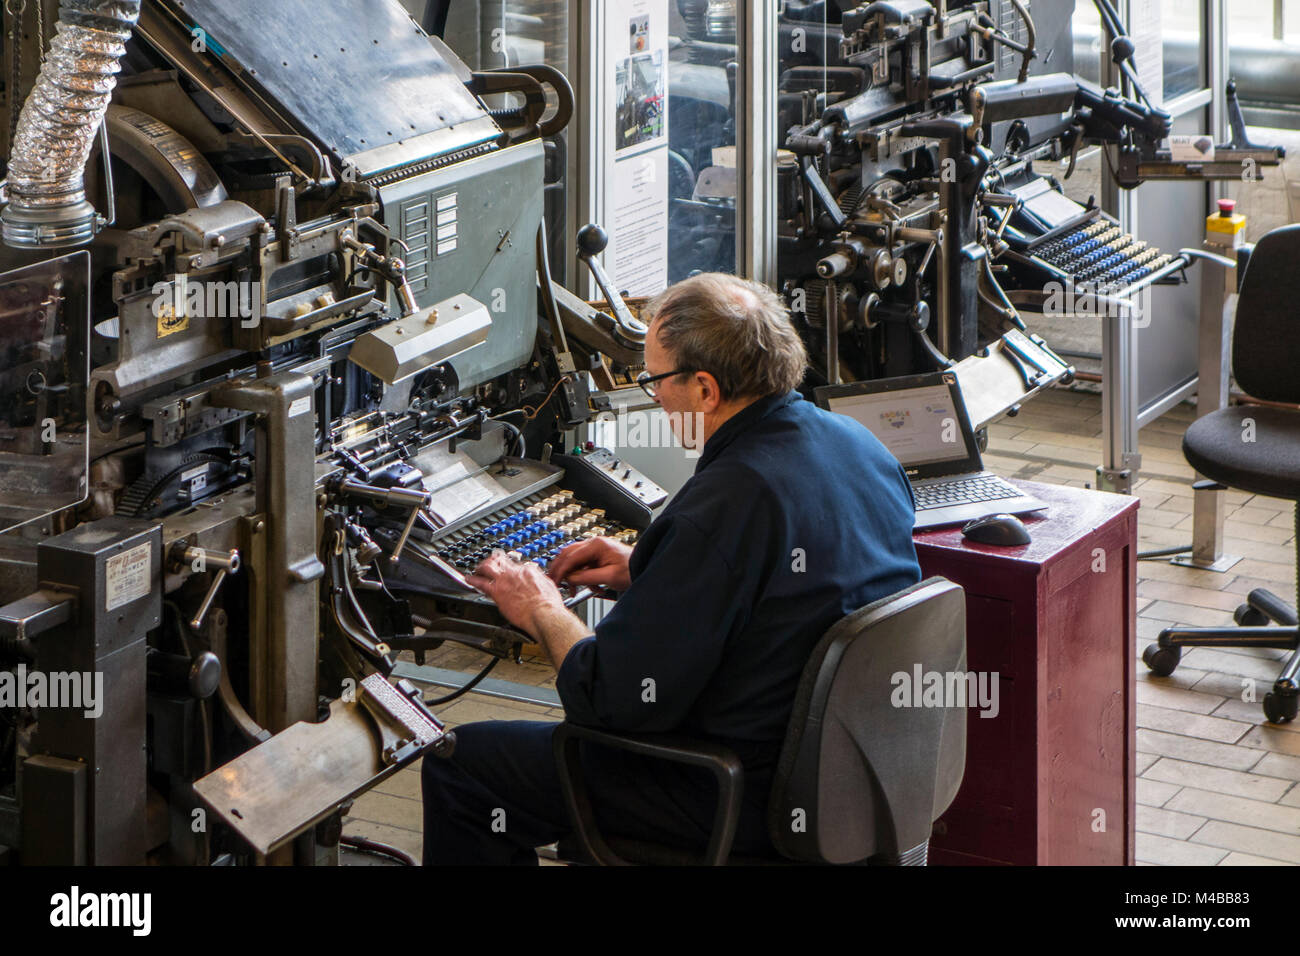 Linotype machine operator enters text on a 90-character keyboard at printing business - Stock Image